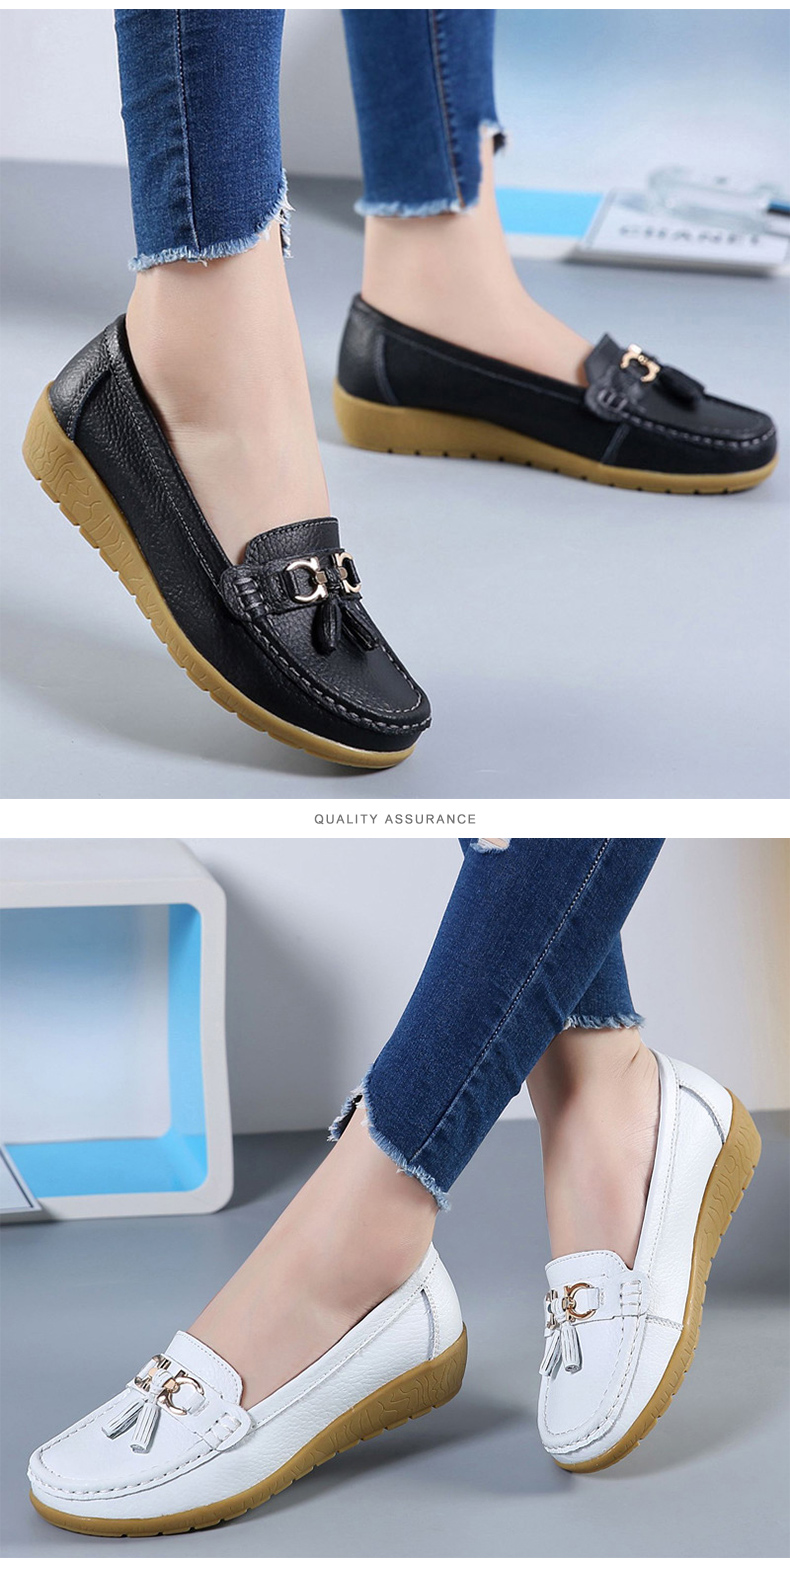 Shop For Cheap Elegant Fashion Novelty Platform Sneakers With High Sole Solid Casual Vulcanize Shoes Med Lace-up Women Shoes To Assure Years Of Trouble-Free Service Shoes